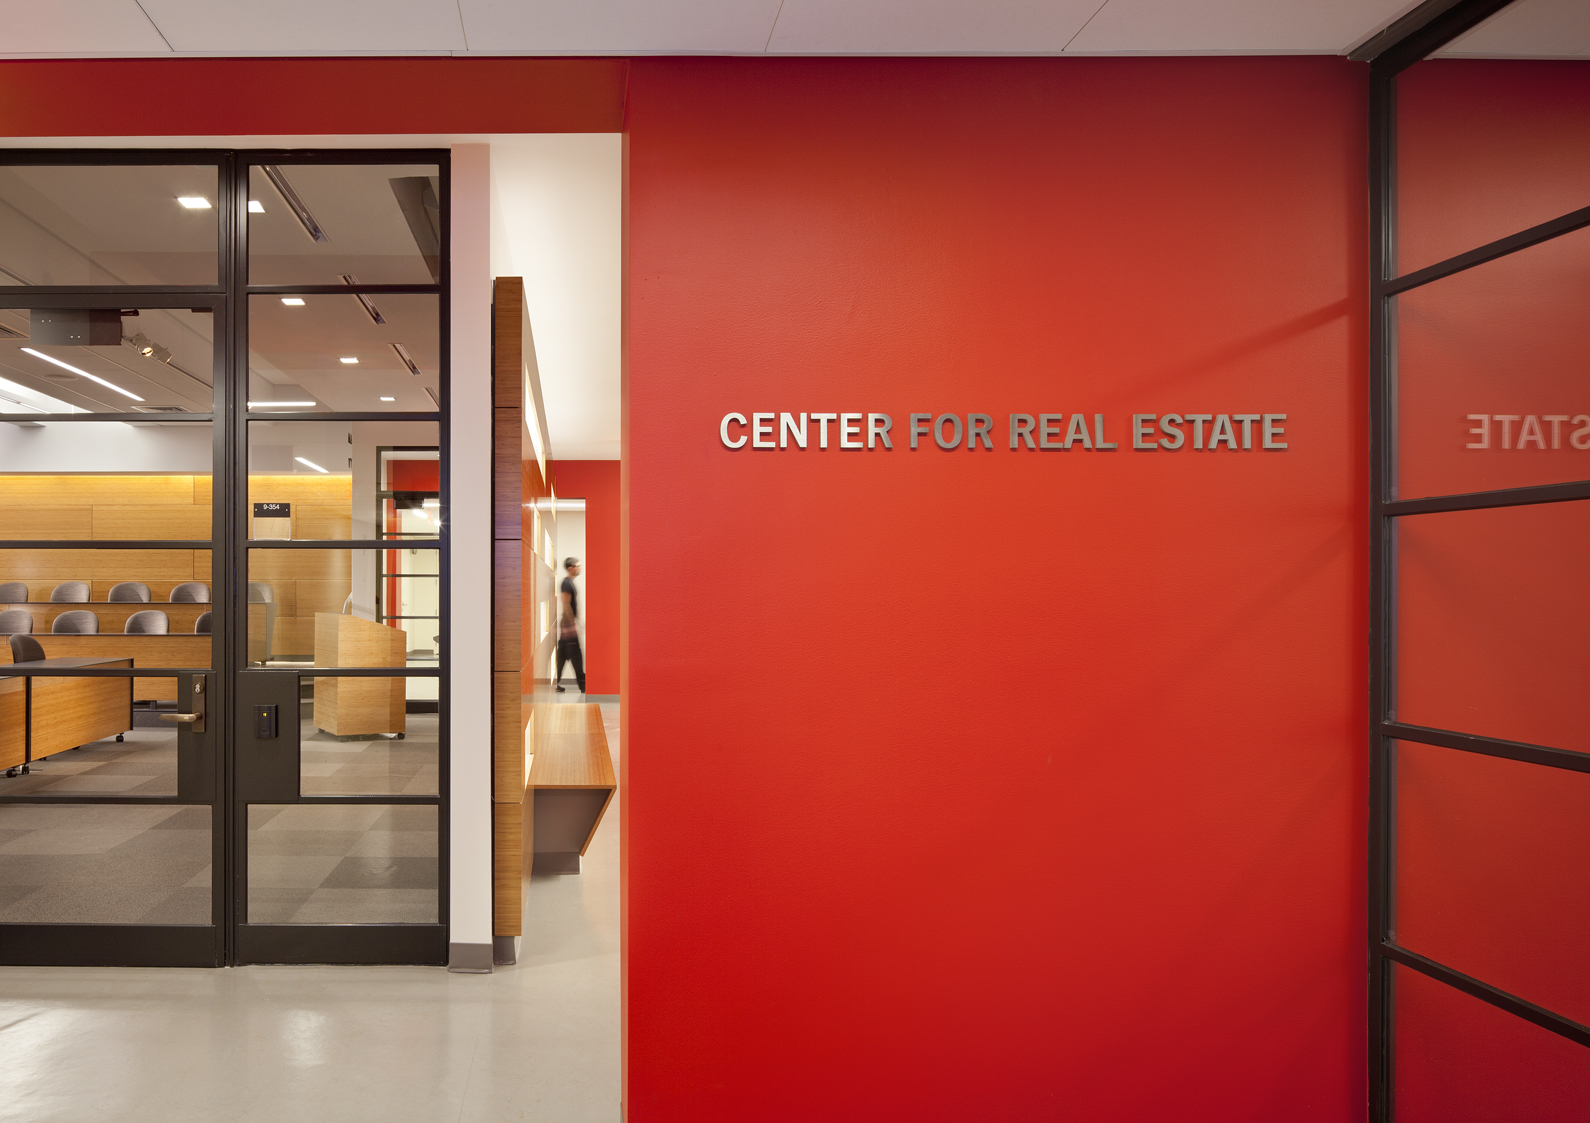 MIT Center for Real Estate - Photo by John Horner